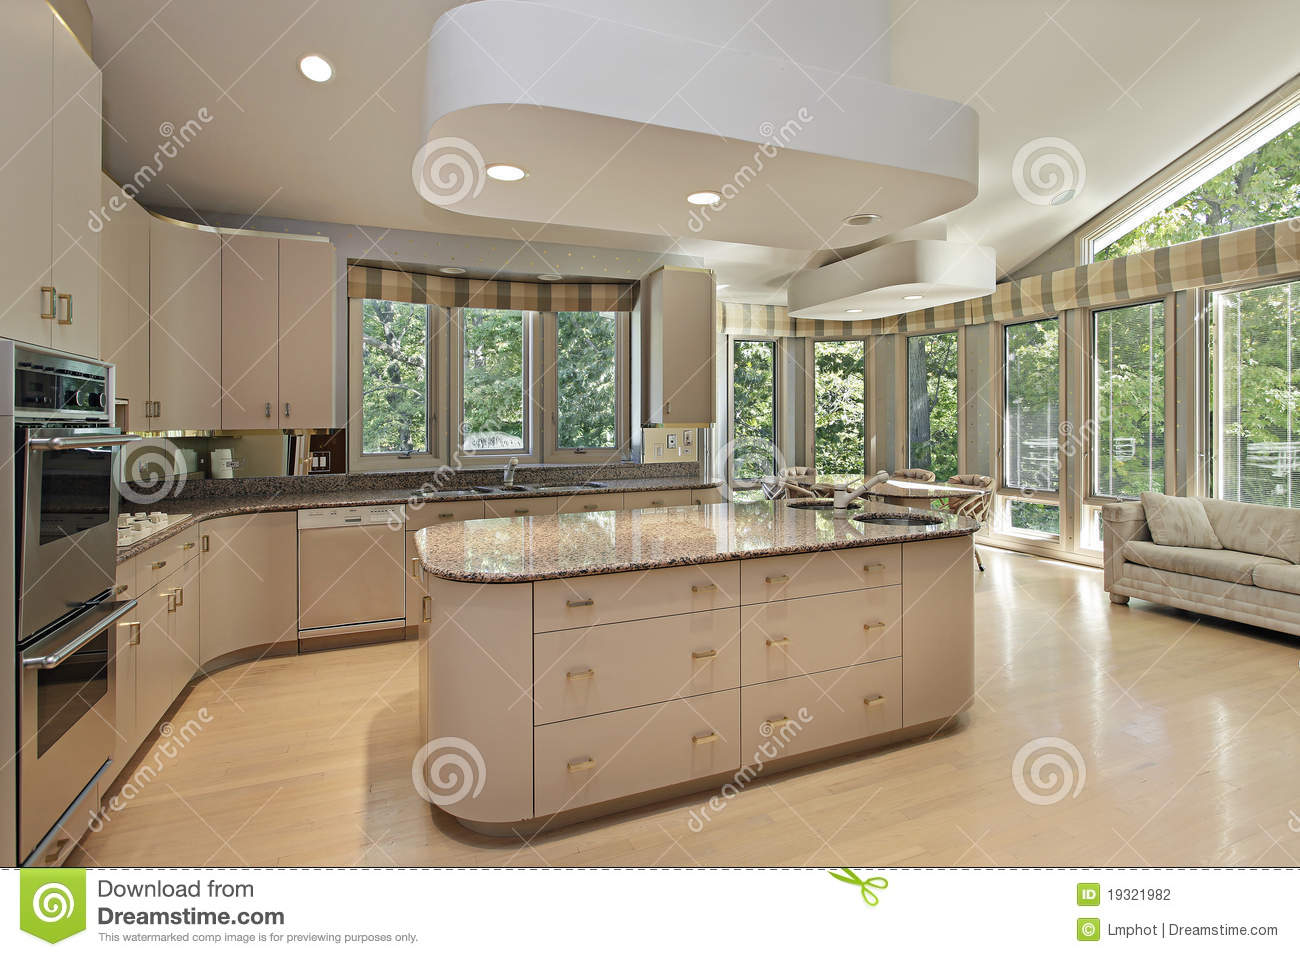 kitchen island lighting fixtures outlet large with center stock photo - image of ...